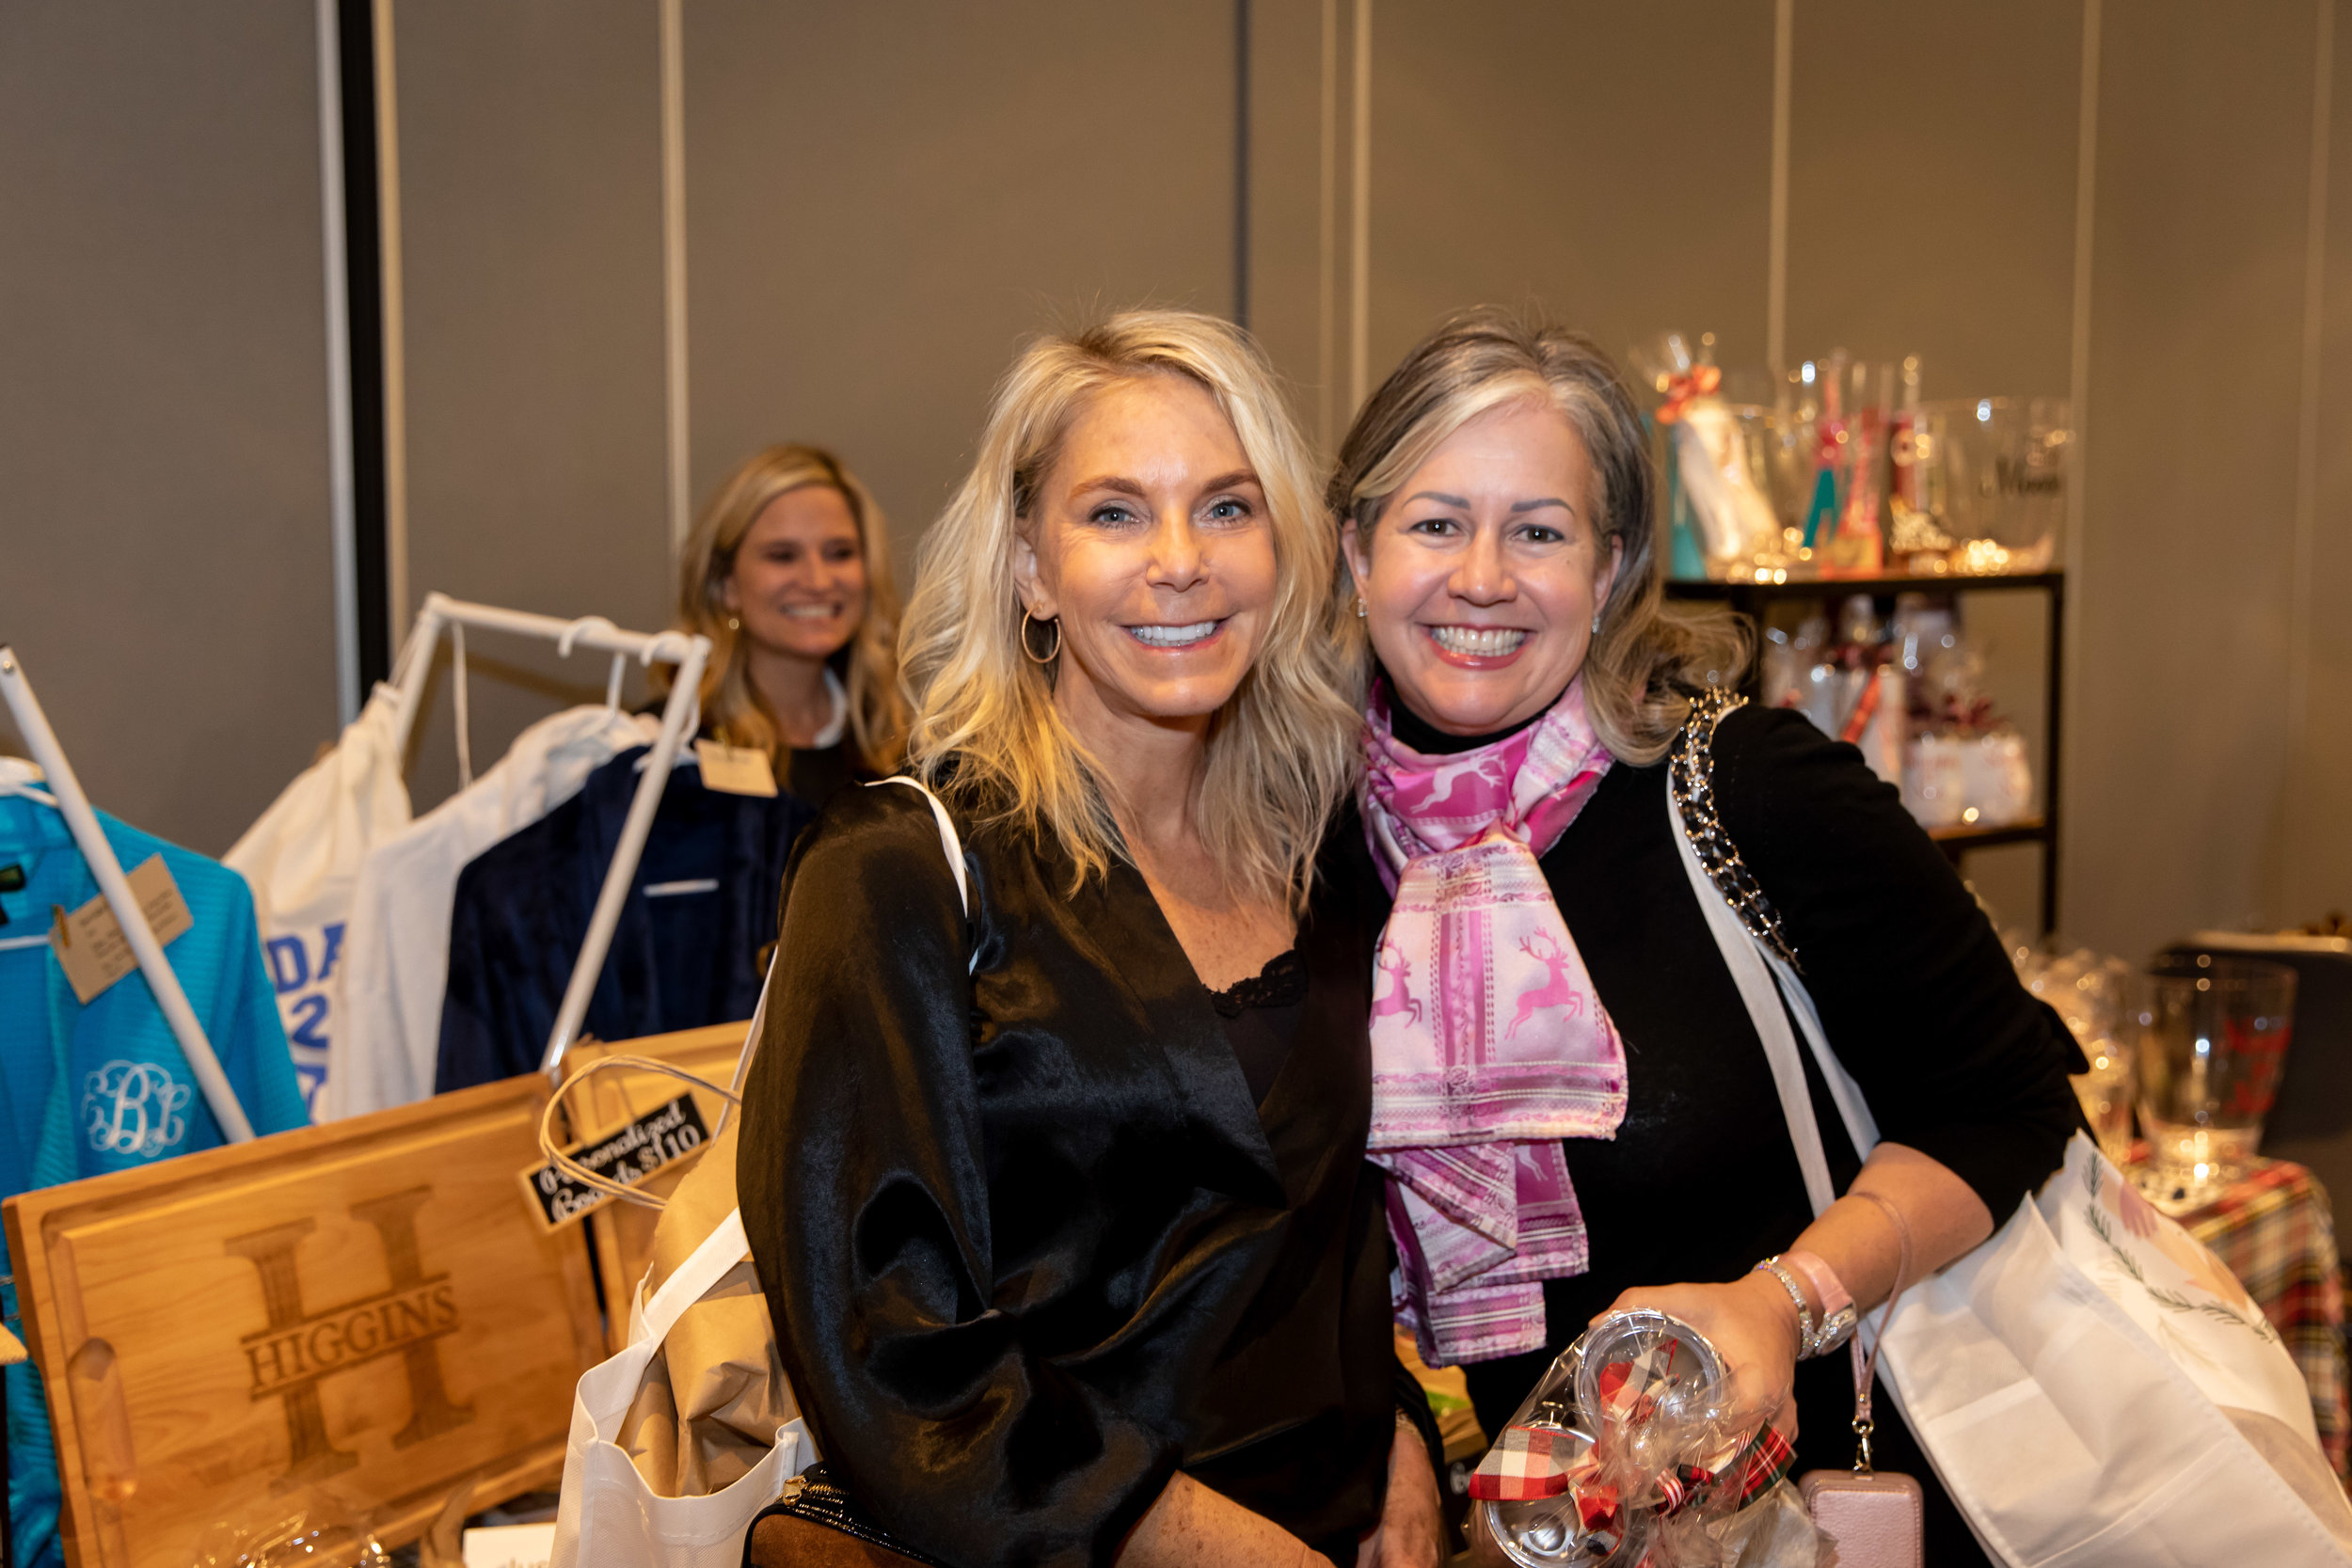 038_Catherine Hall Studios_CHG Holiday Boutique and Luncheon December 2018.jpg